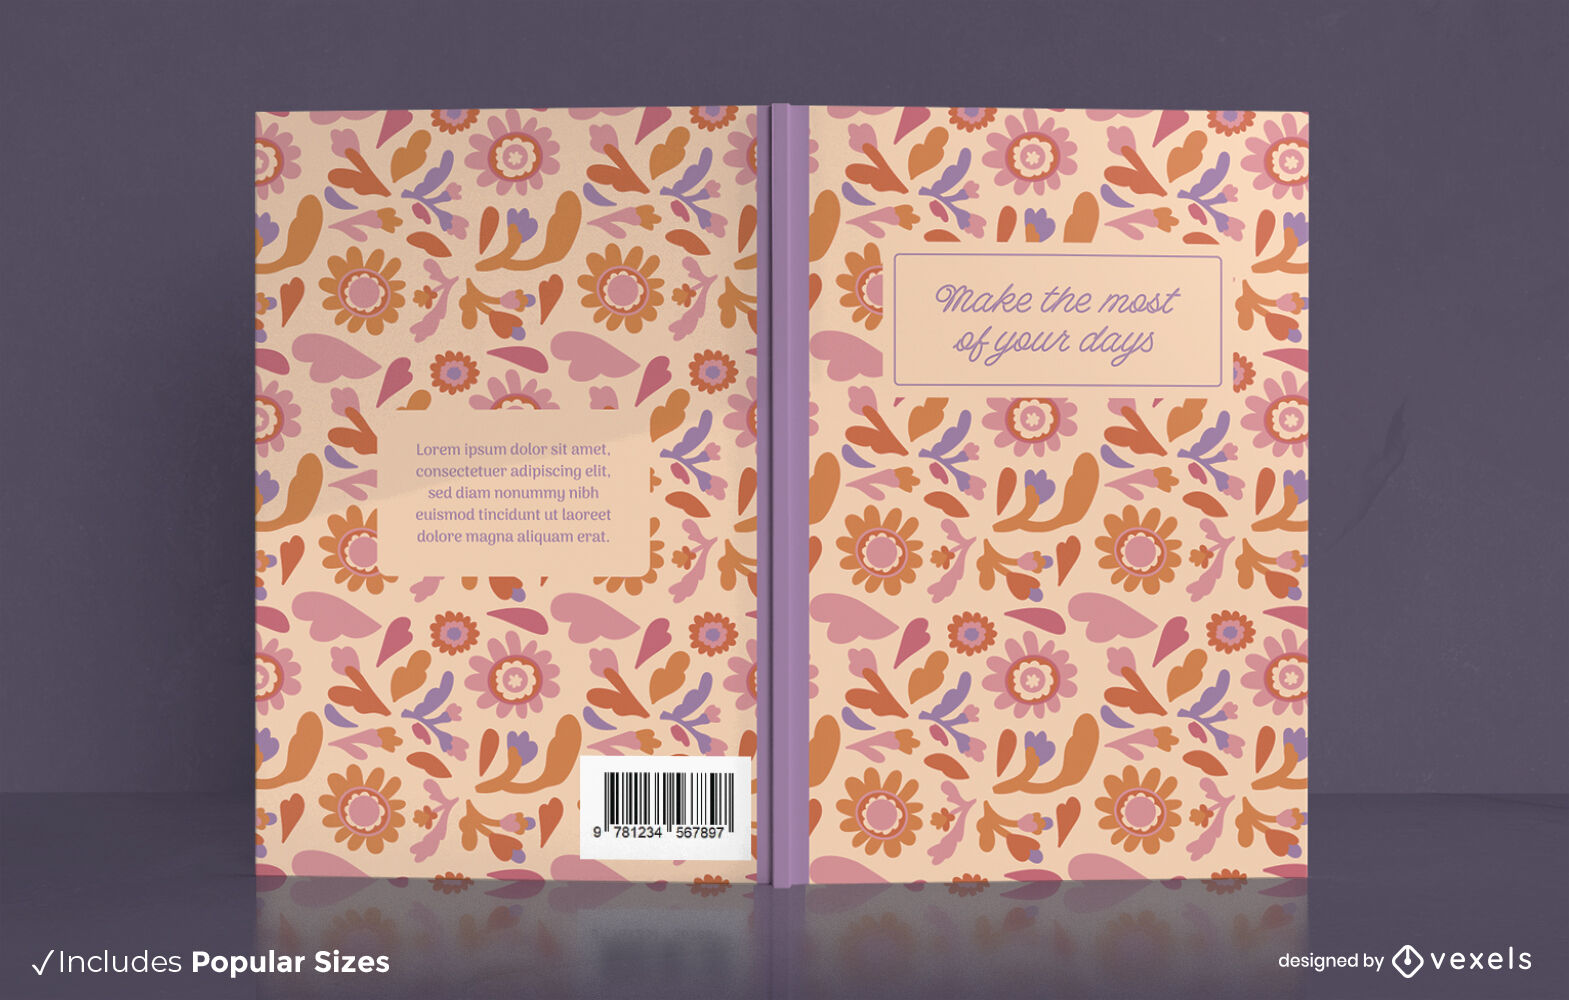 Beautiful daily journal book cover design